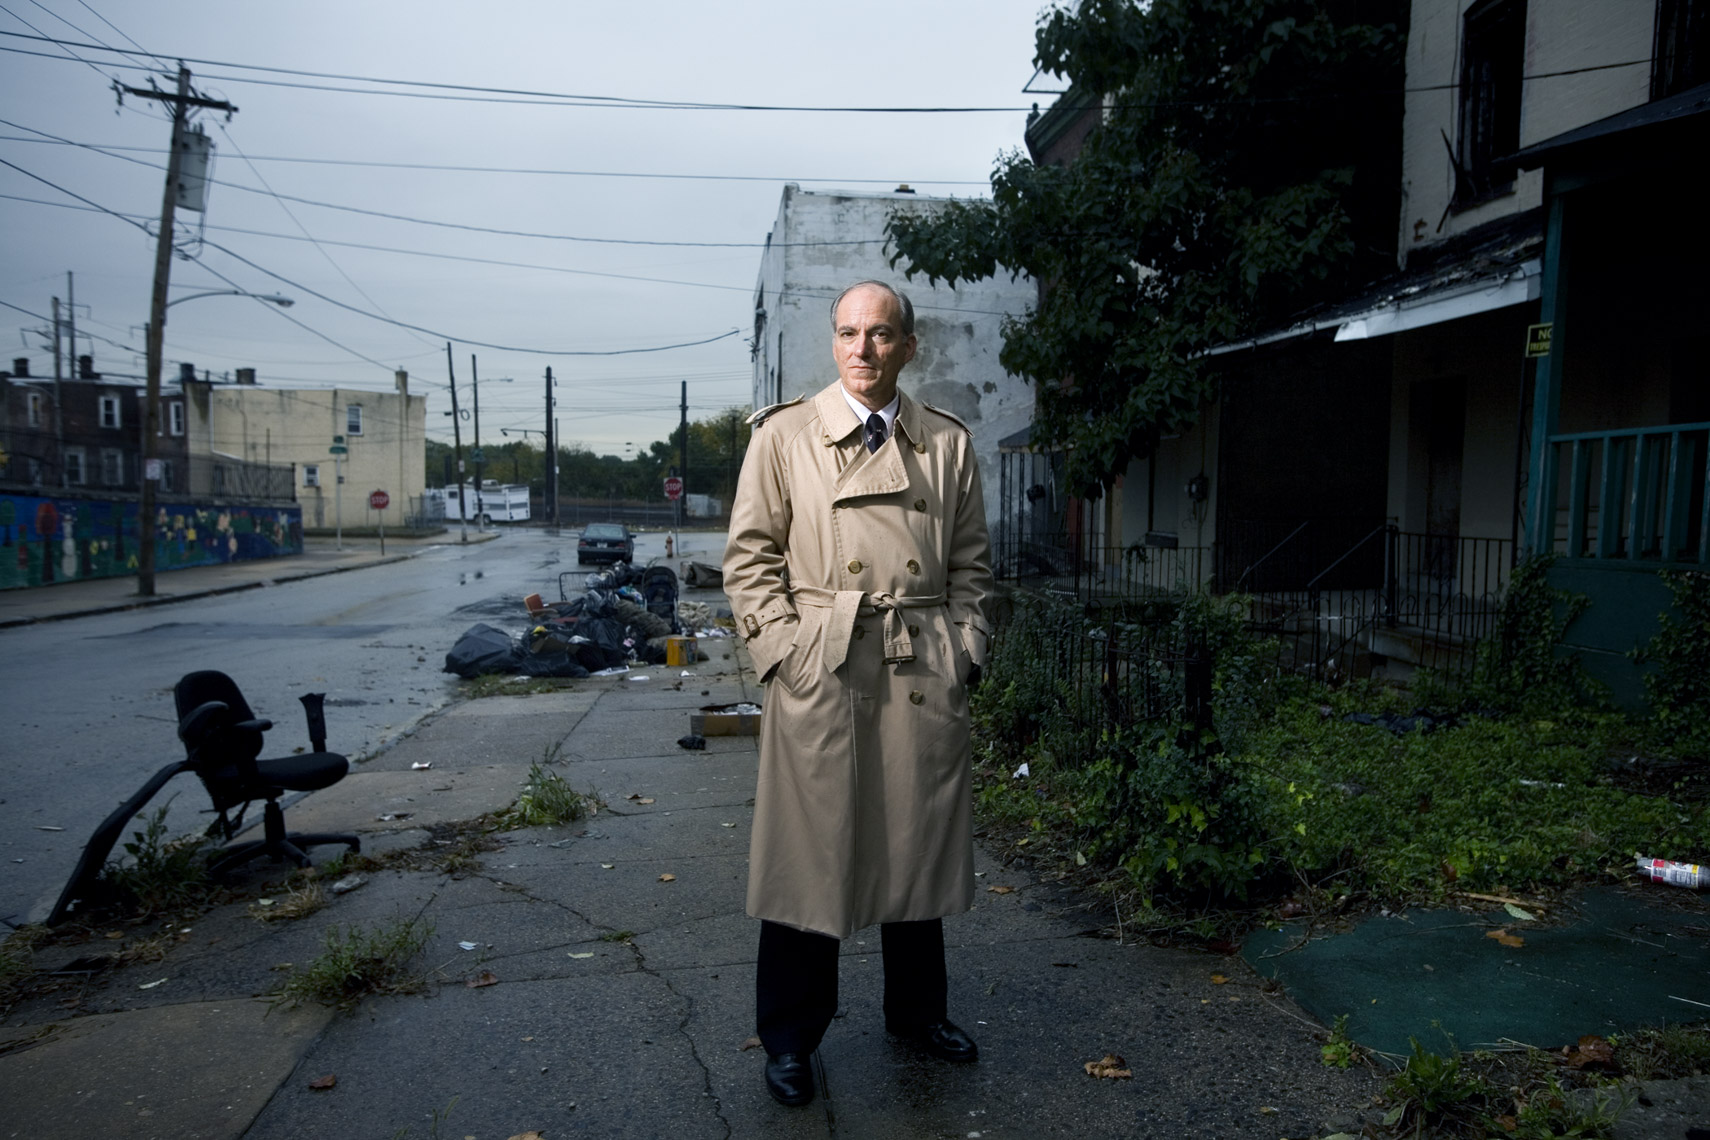 Portrait of criminologist in Philadelphia